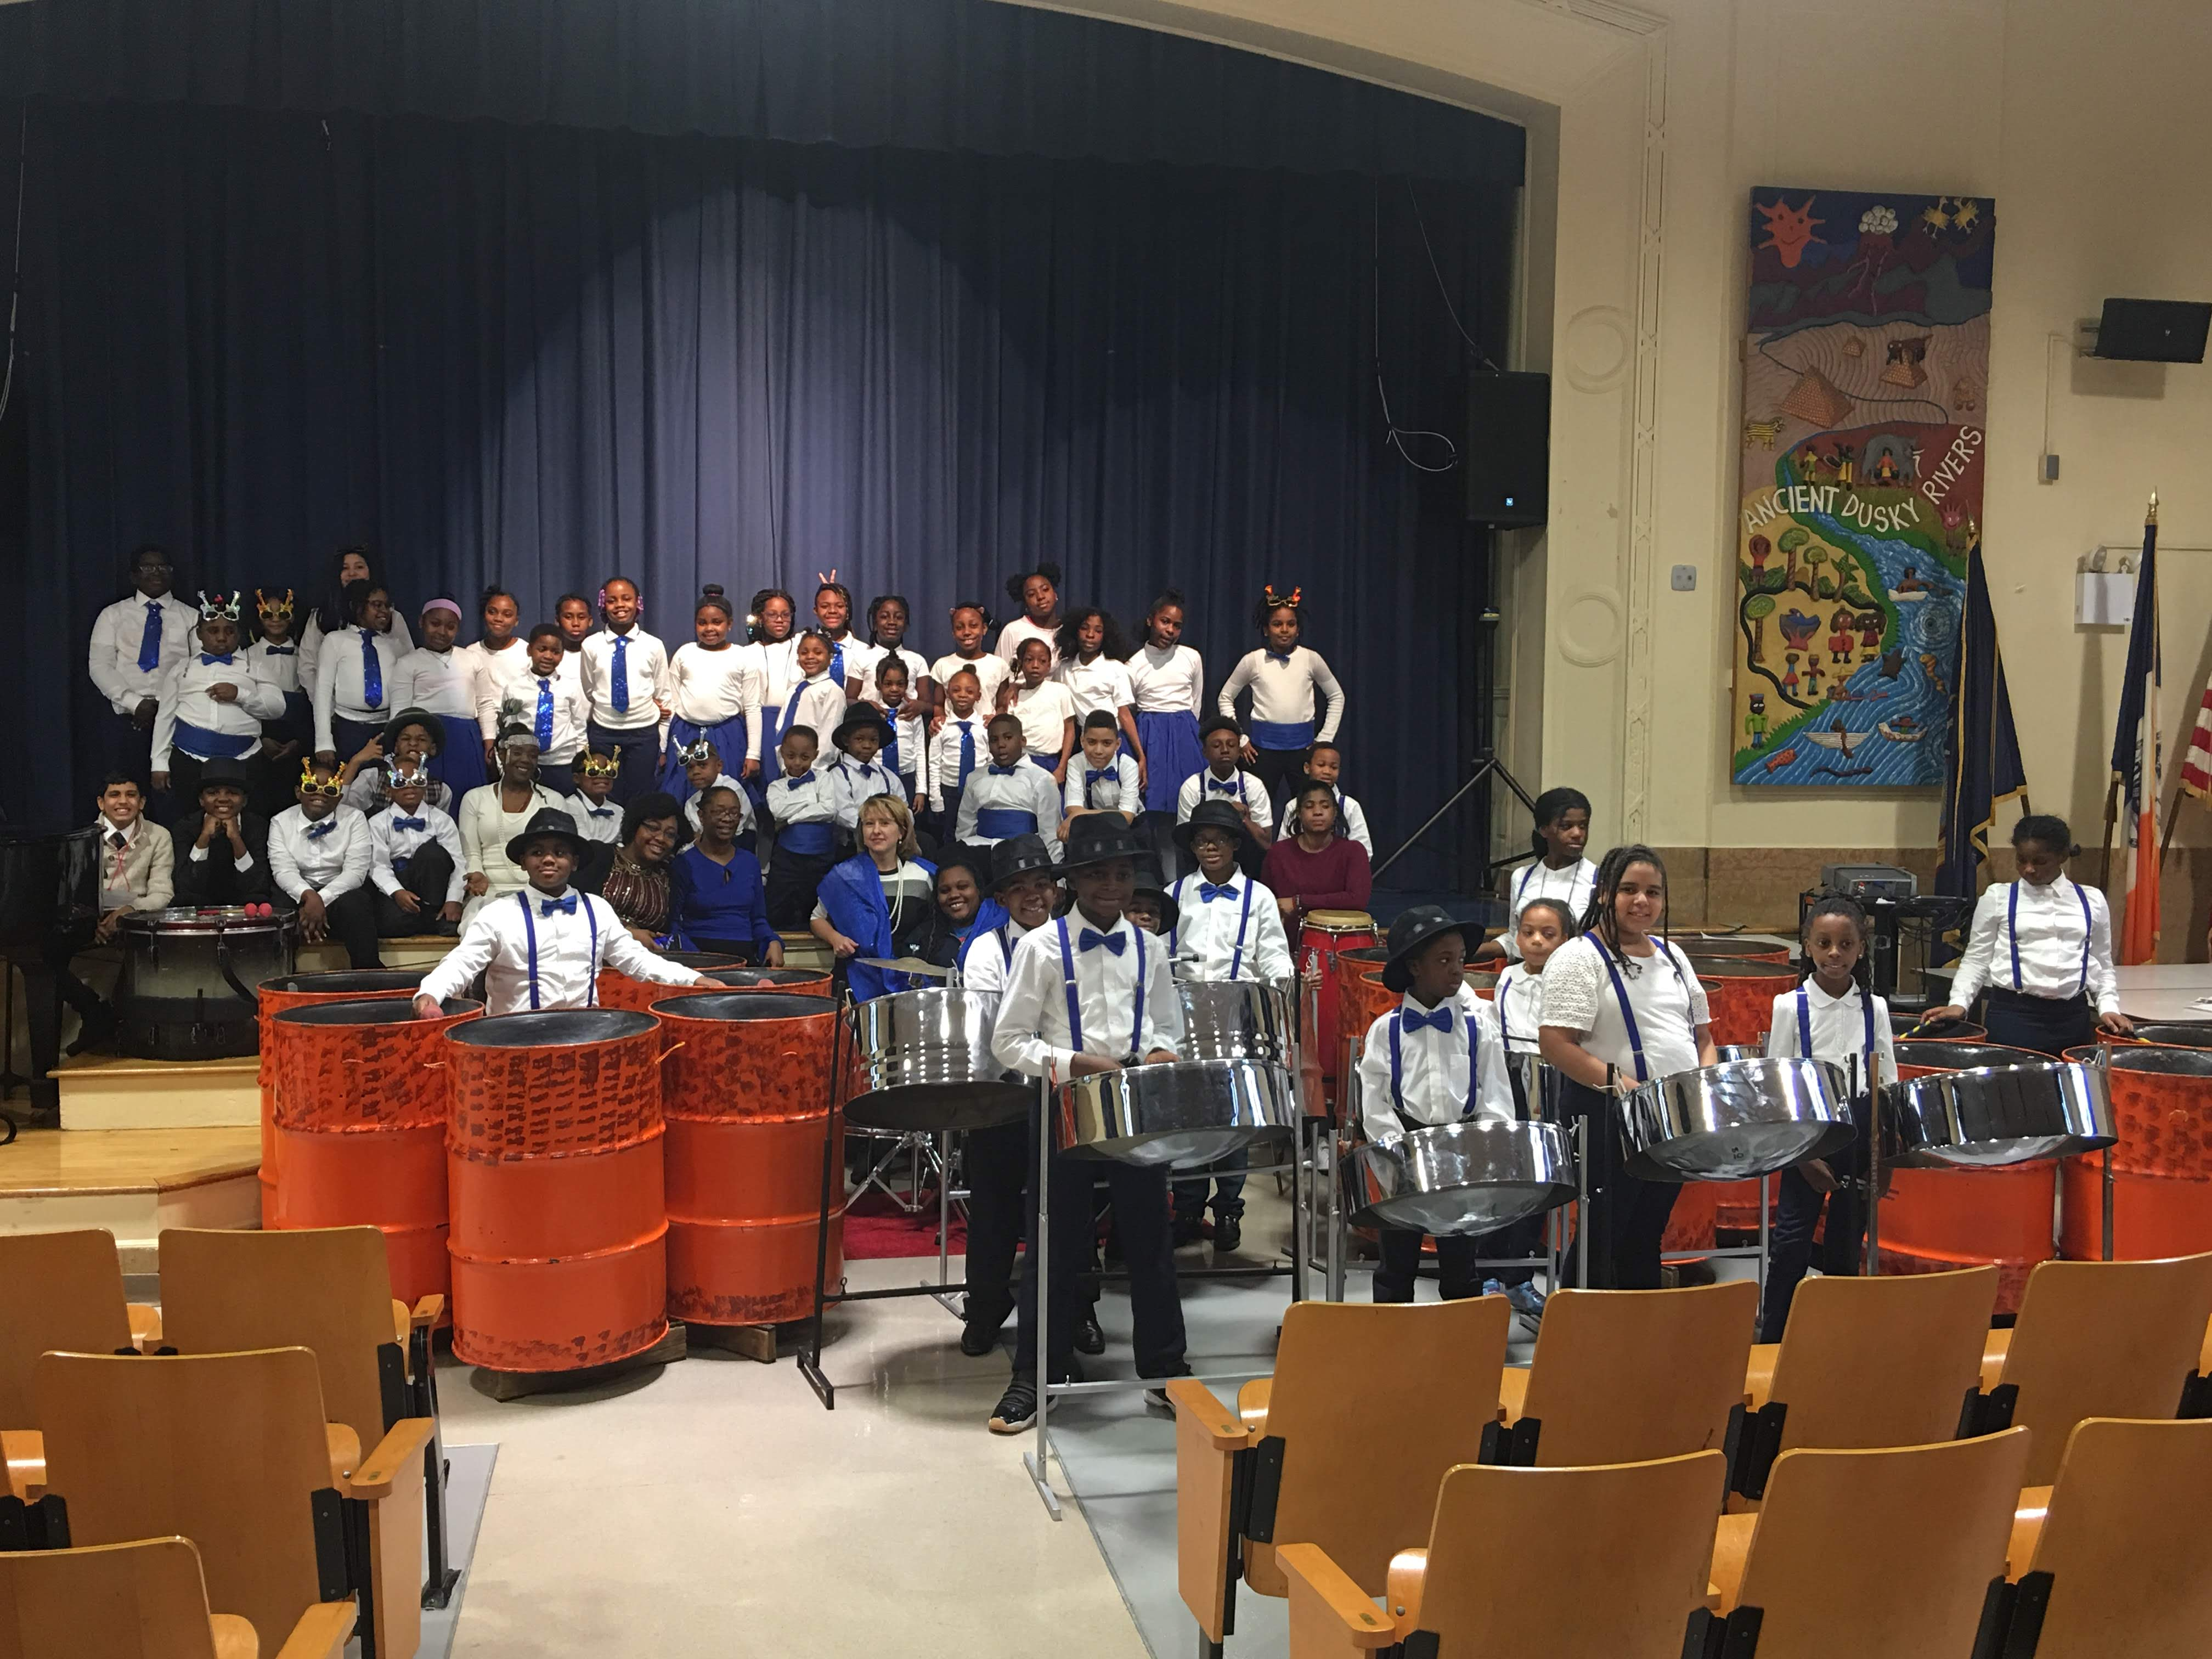 Chorus and steel drum students pose together